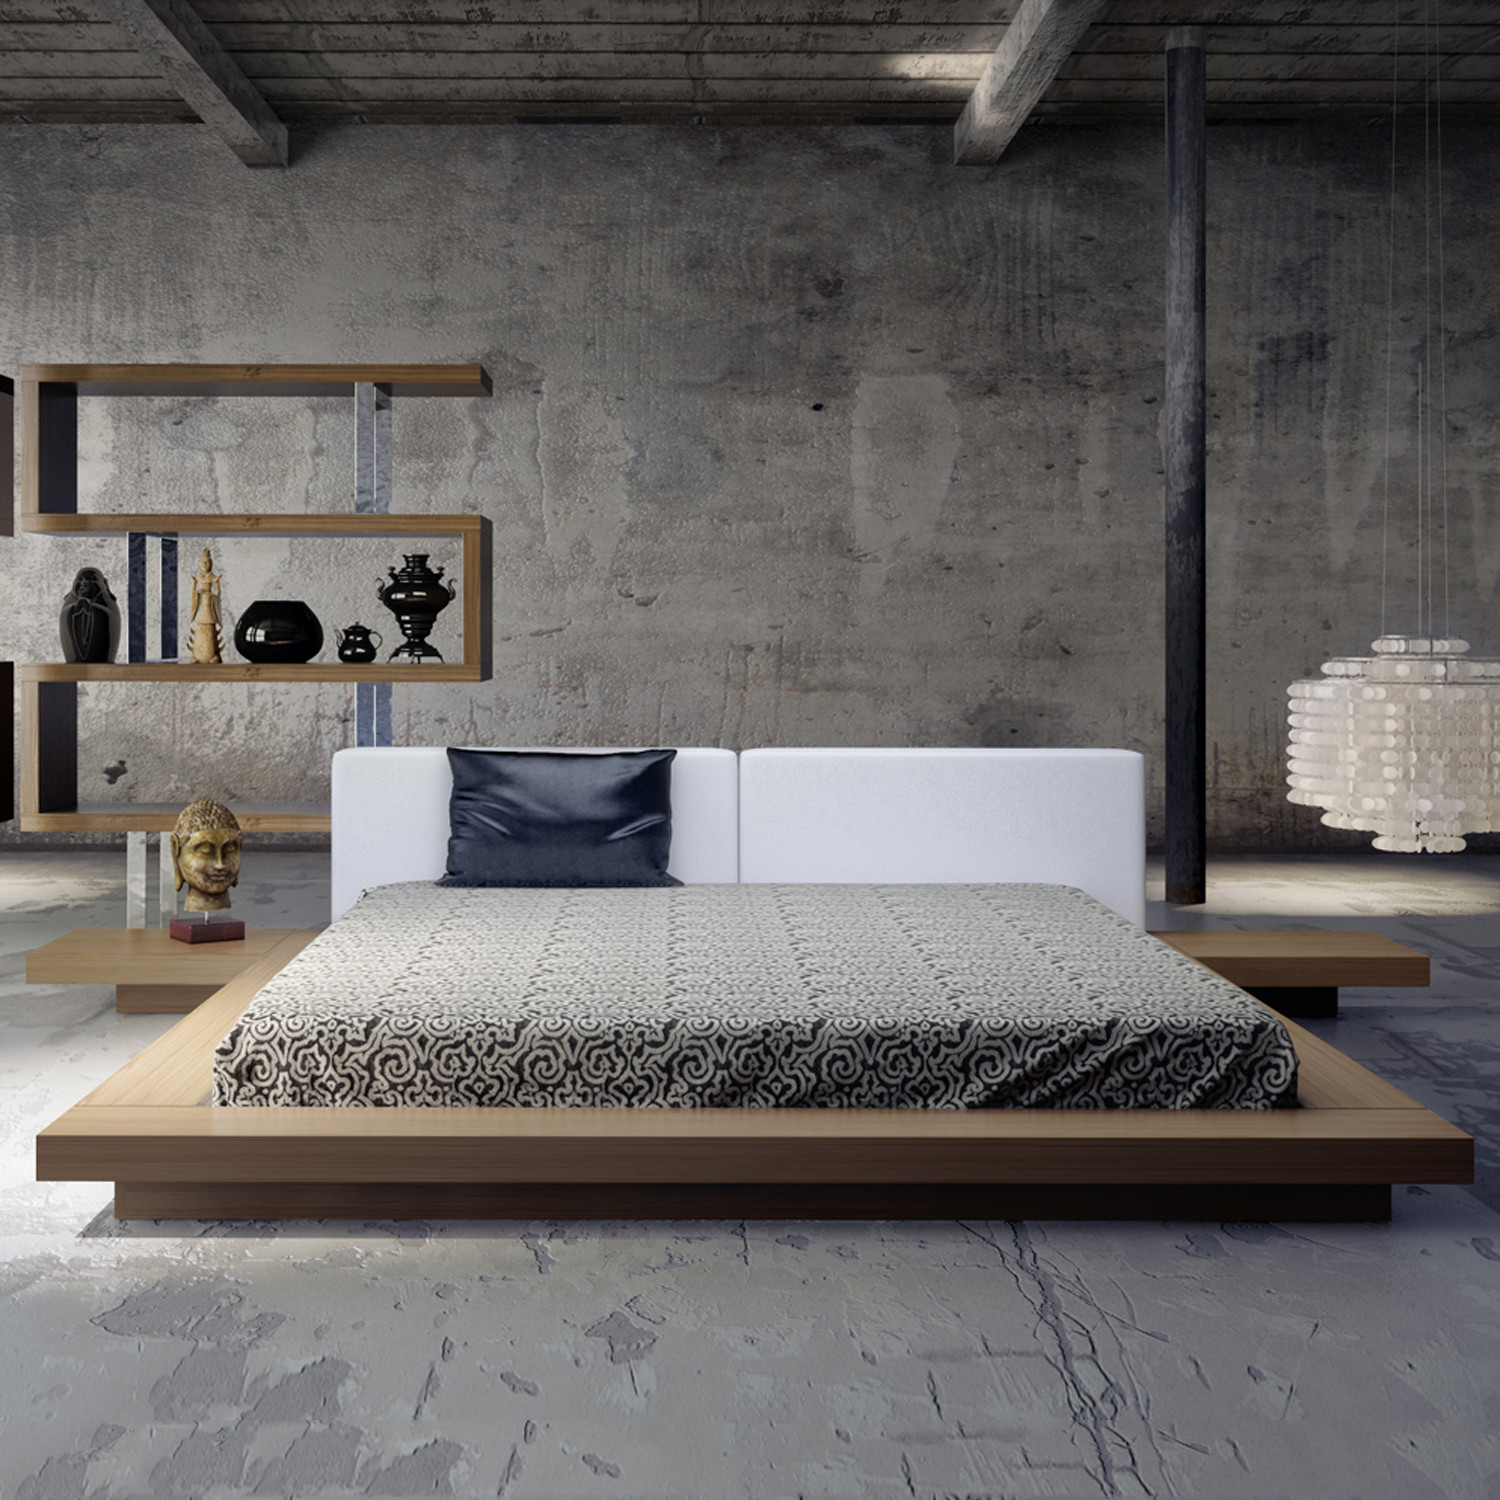 https://www.touchofmodern.com/sales/modloft-bedroom-a1508431-2a5a-4fd9-a661-62a39892e635/worth-bed-with-matching-nightstands-walnut-white?share_invite_token=WQ3PD6V0